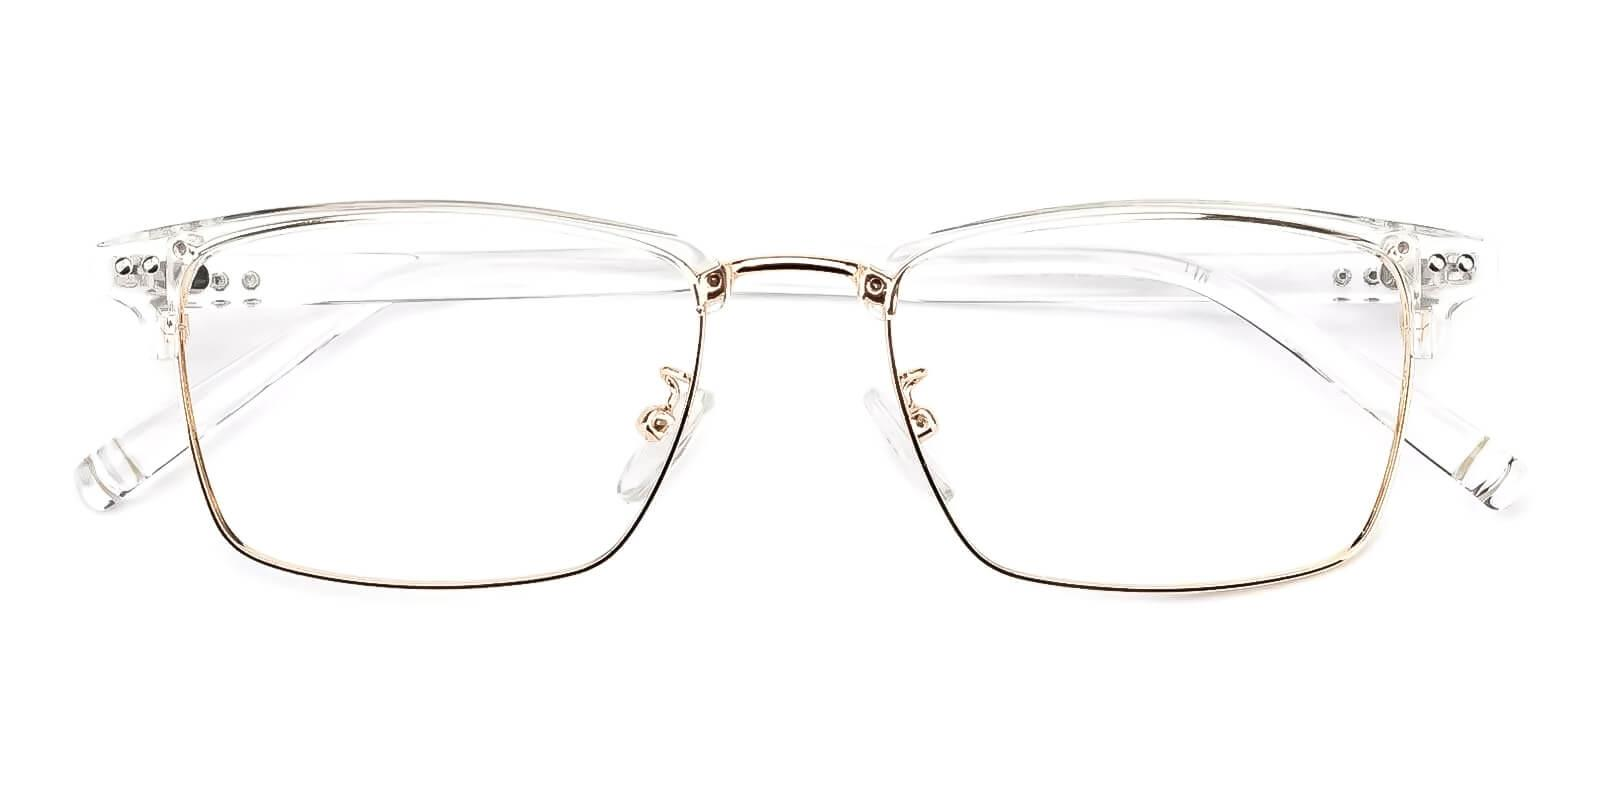 Venti Translucent TR Eyeglasses , Fashion , NosePads Frames from ABBE Glasses